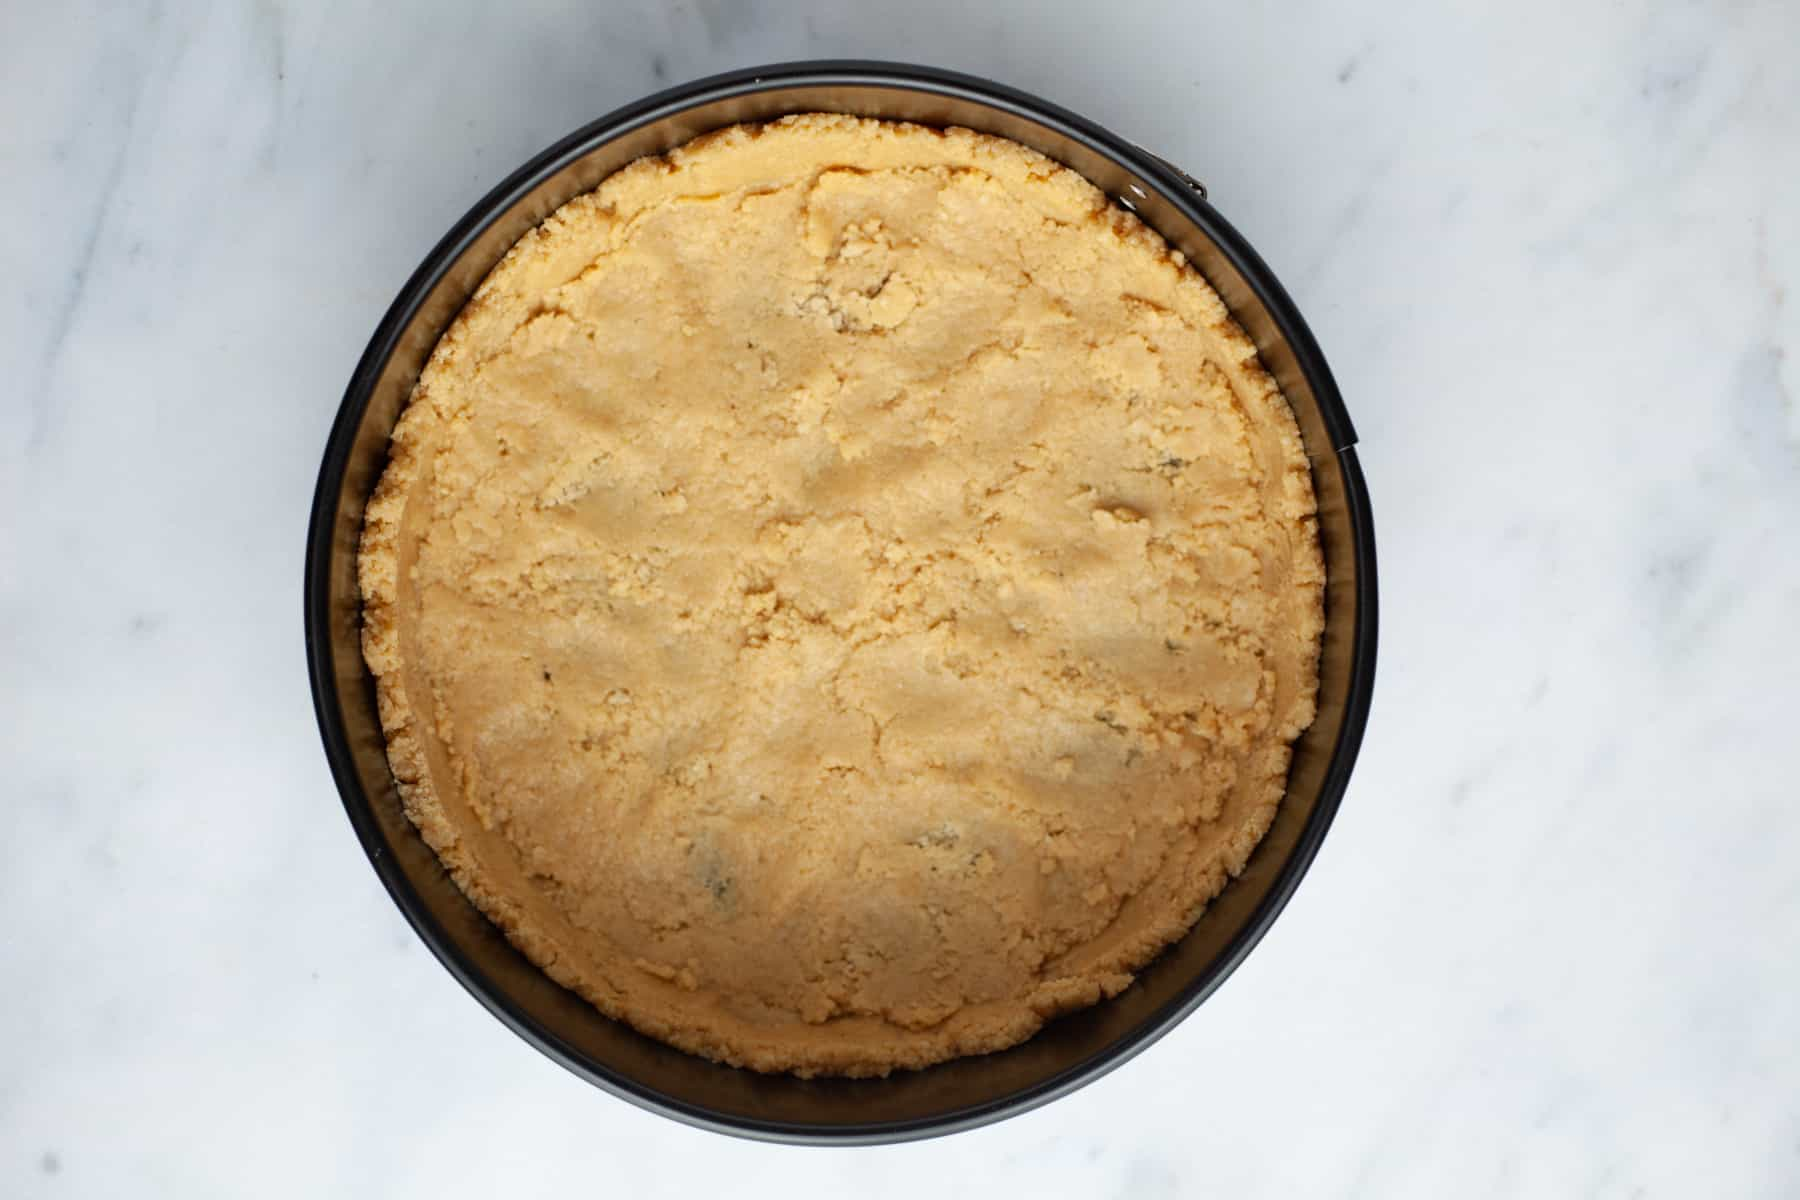 A cheesecake pan with unbaked golden oreo cheesecake crust in it